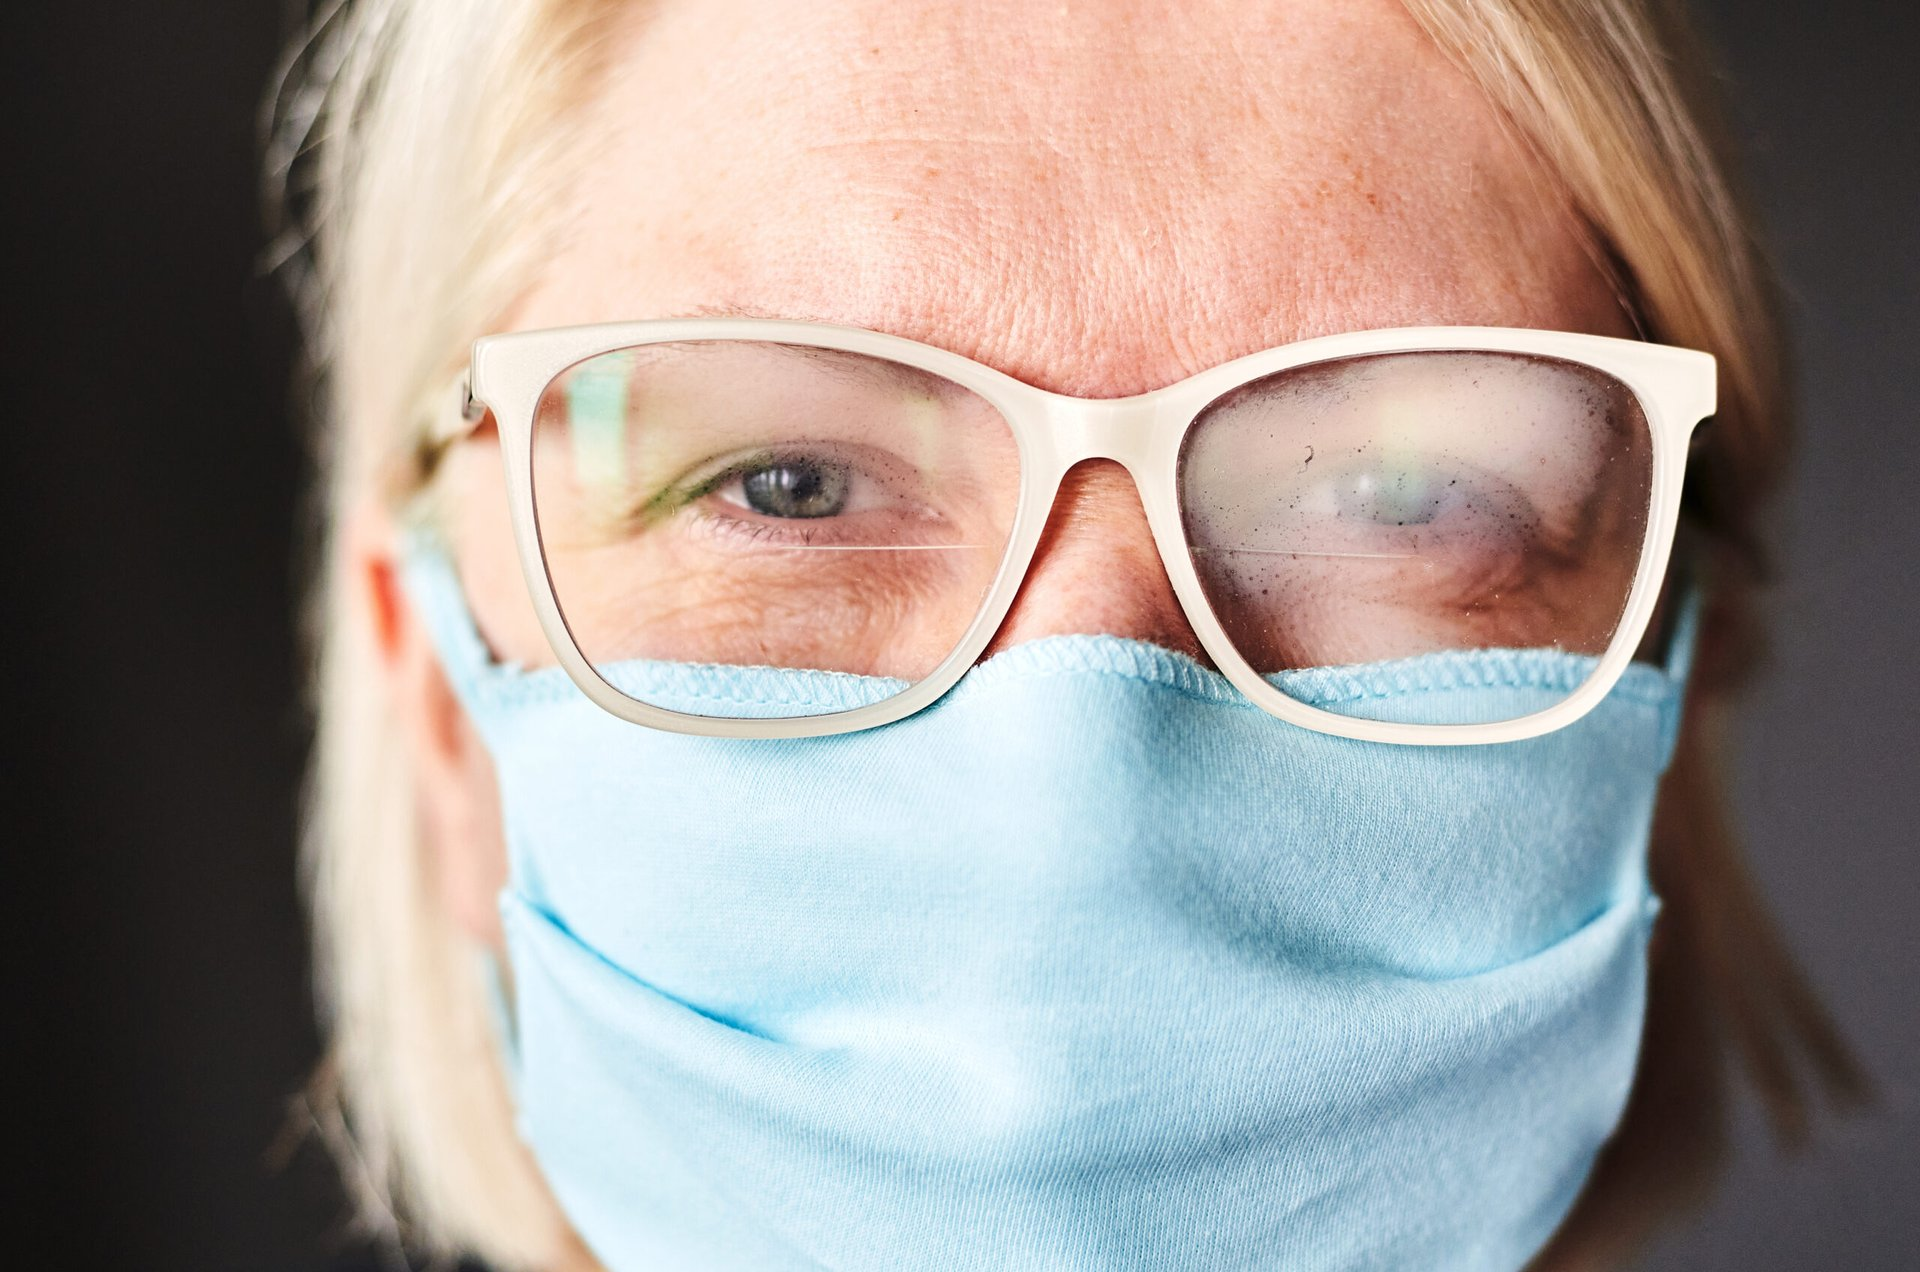 Woman wearing eyeglasses over a mask